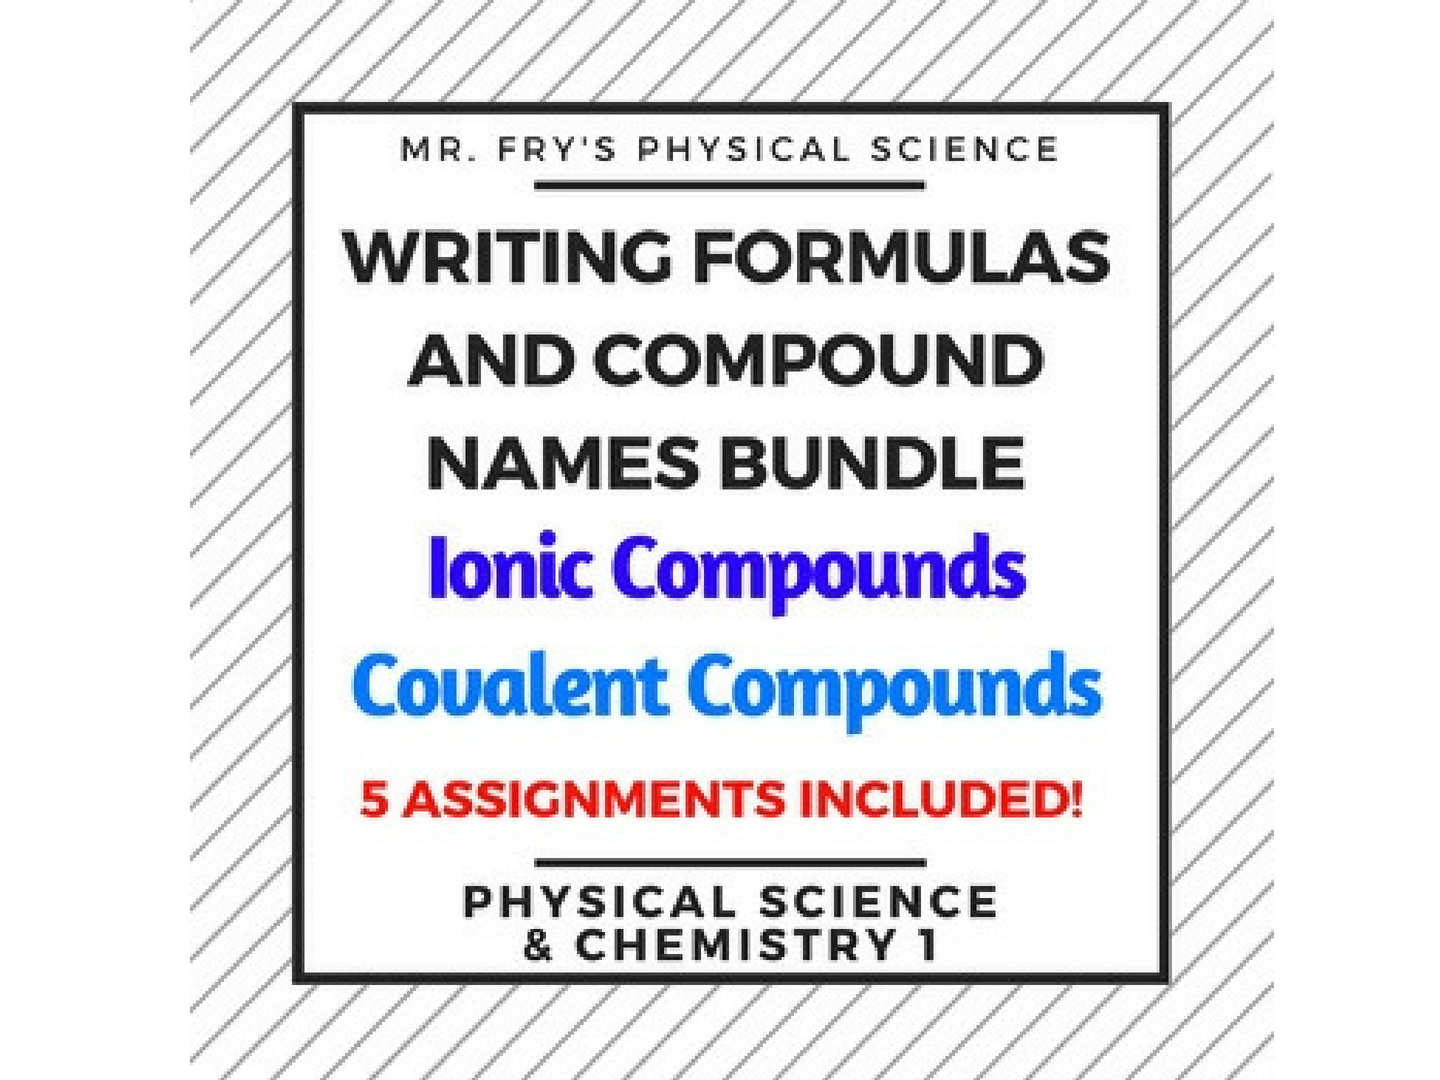 Writing Formulas and Compound Names Bundle